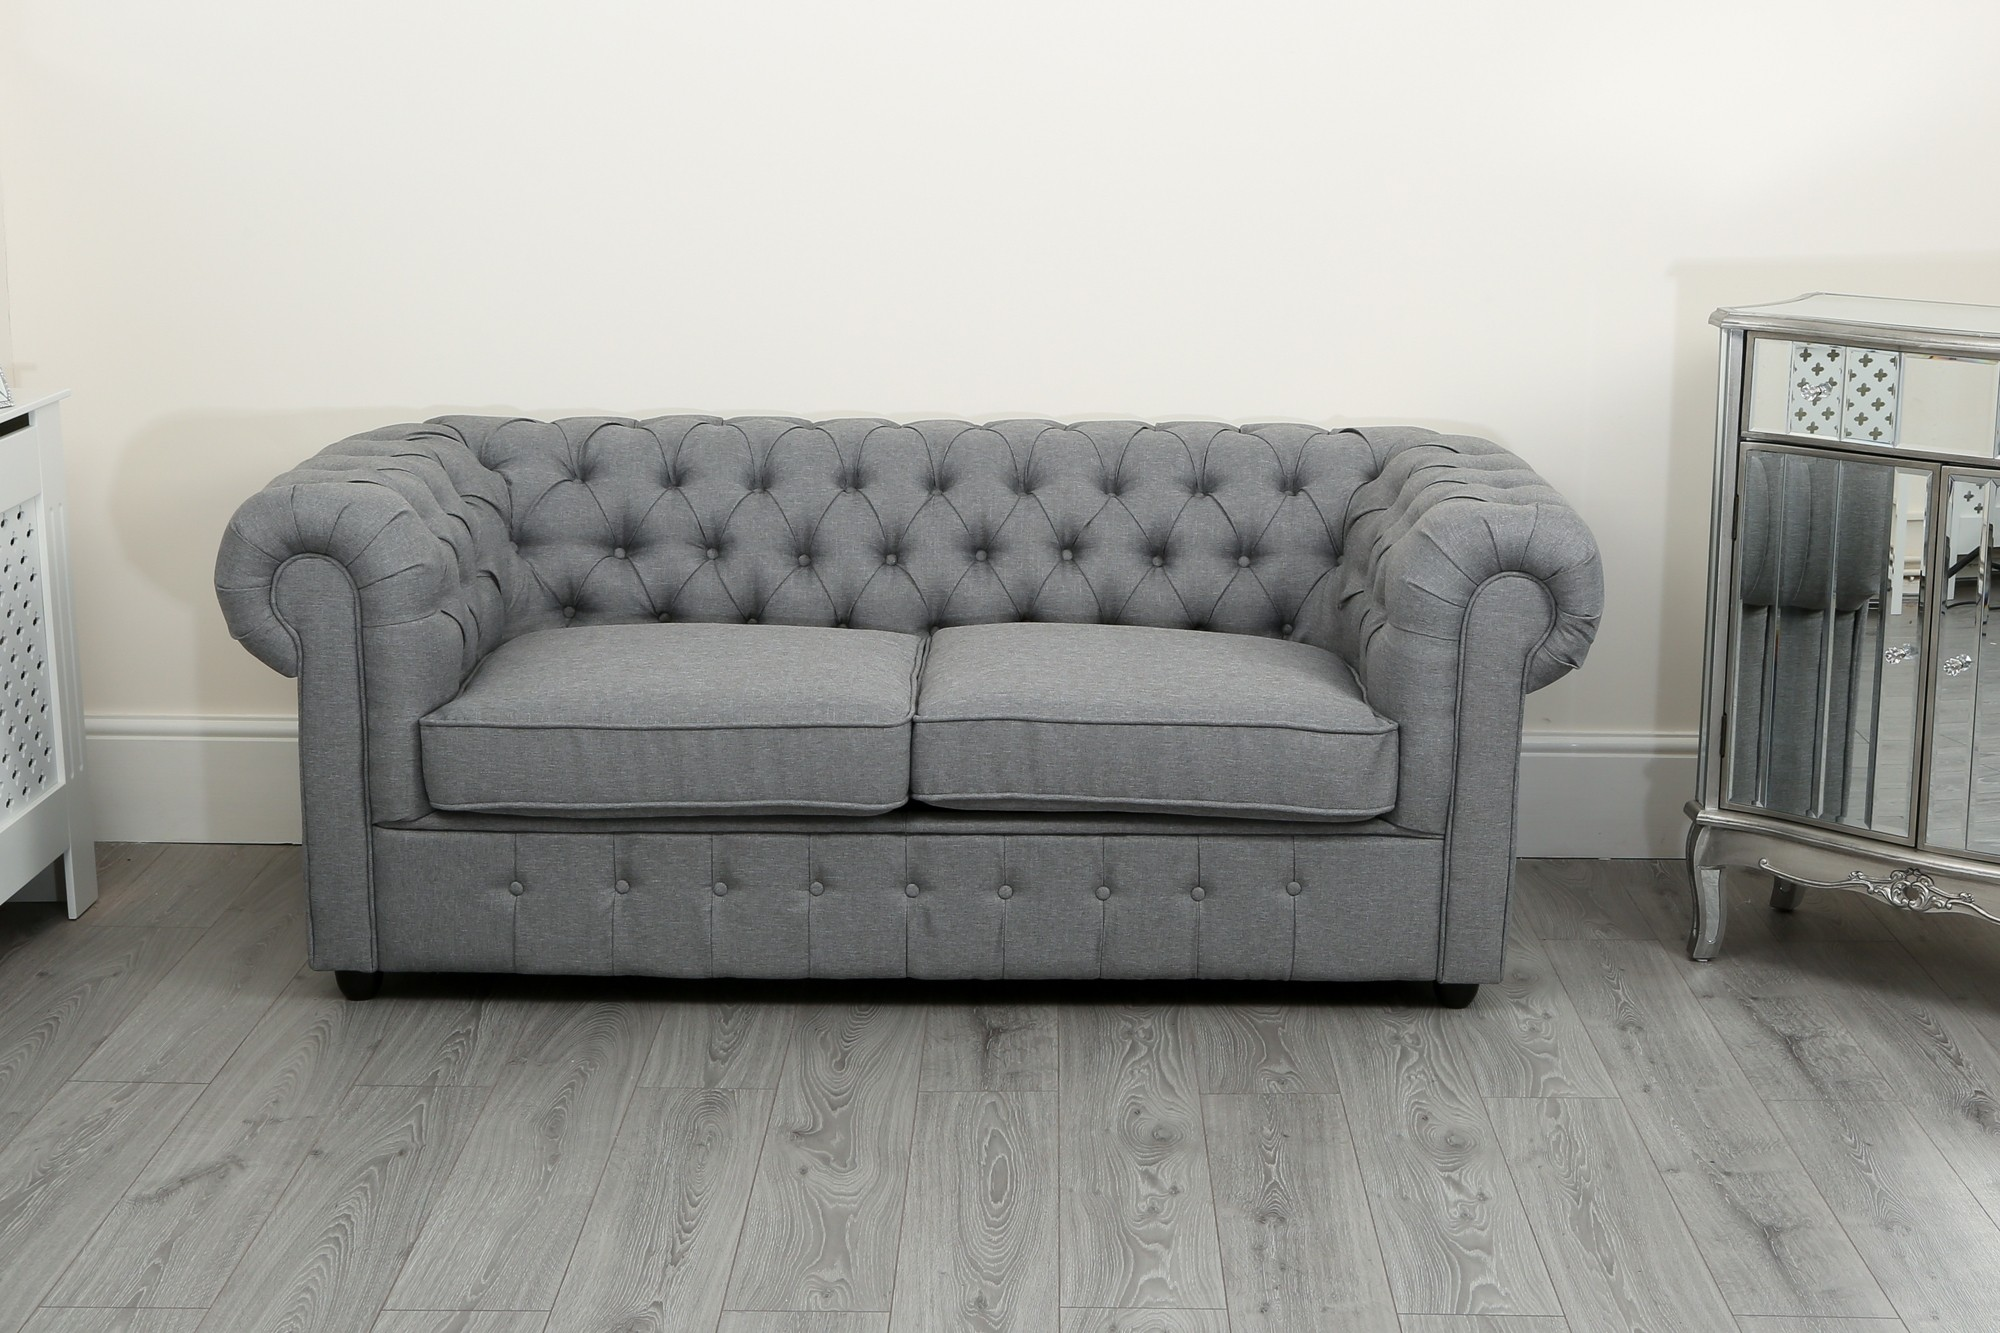 fabric chesterfield sofa bed uk clearance sectional sofas suite 3 2 and 1 seater in grey linen